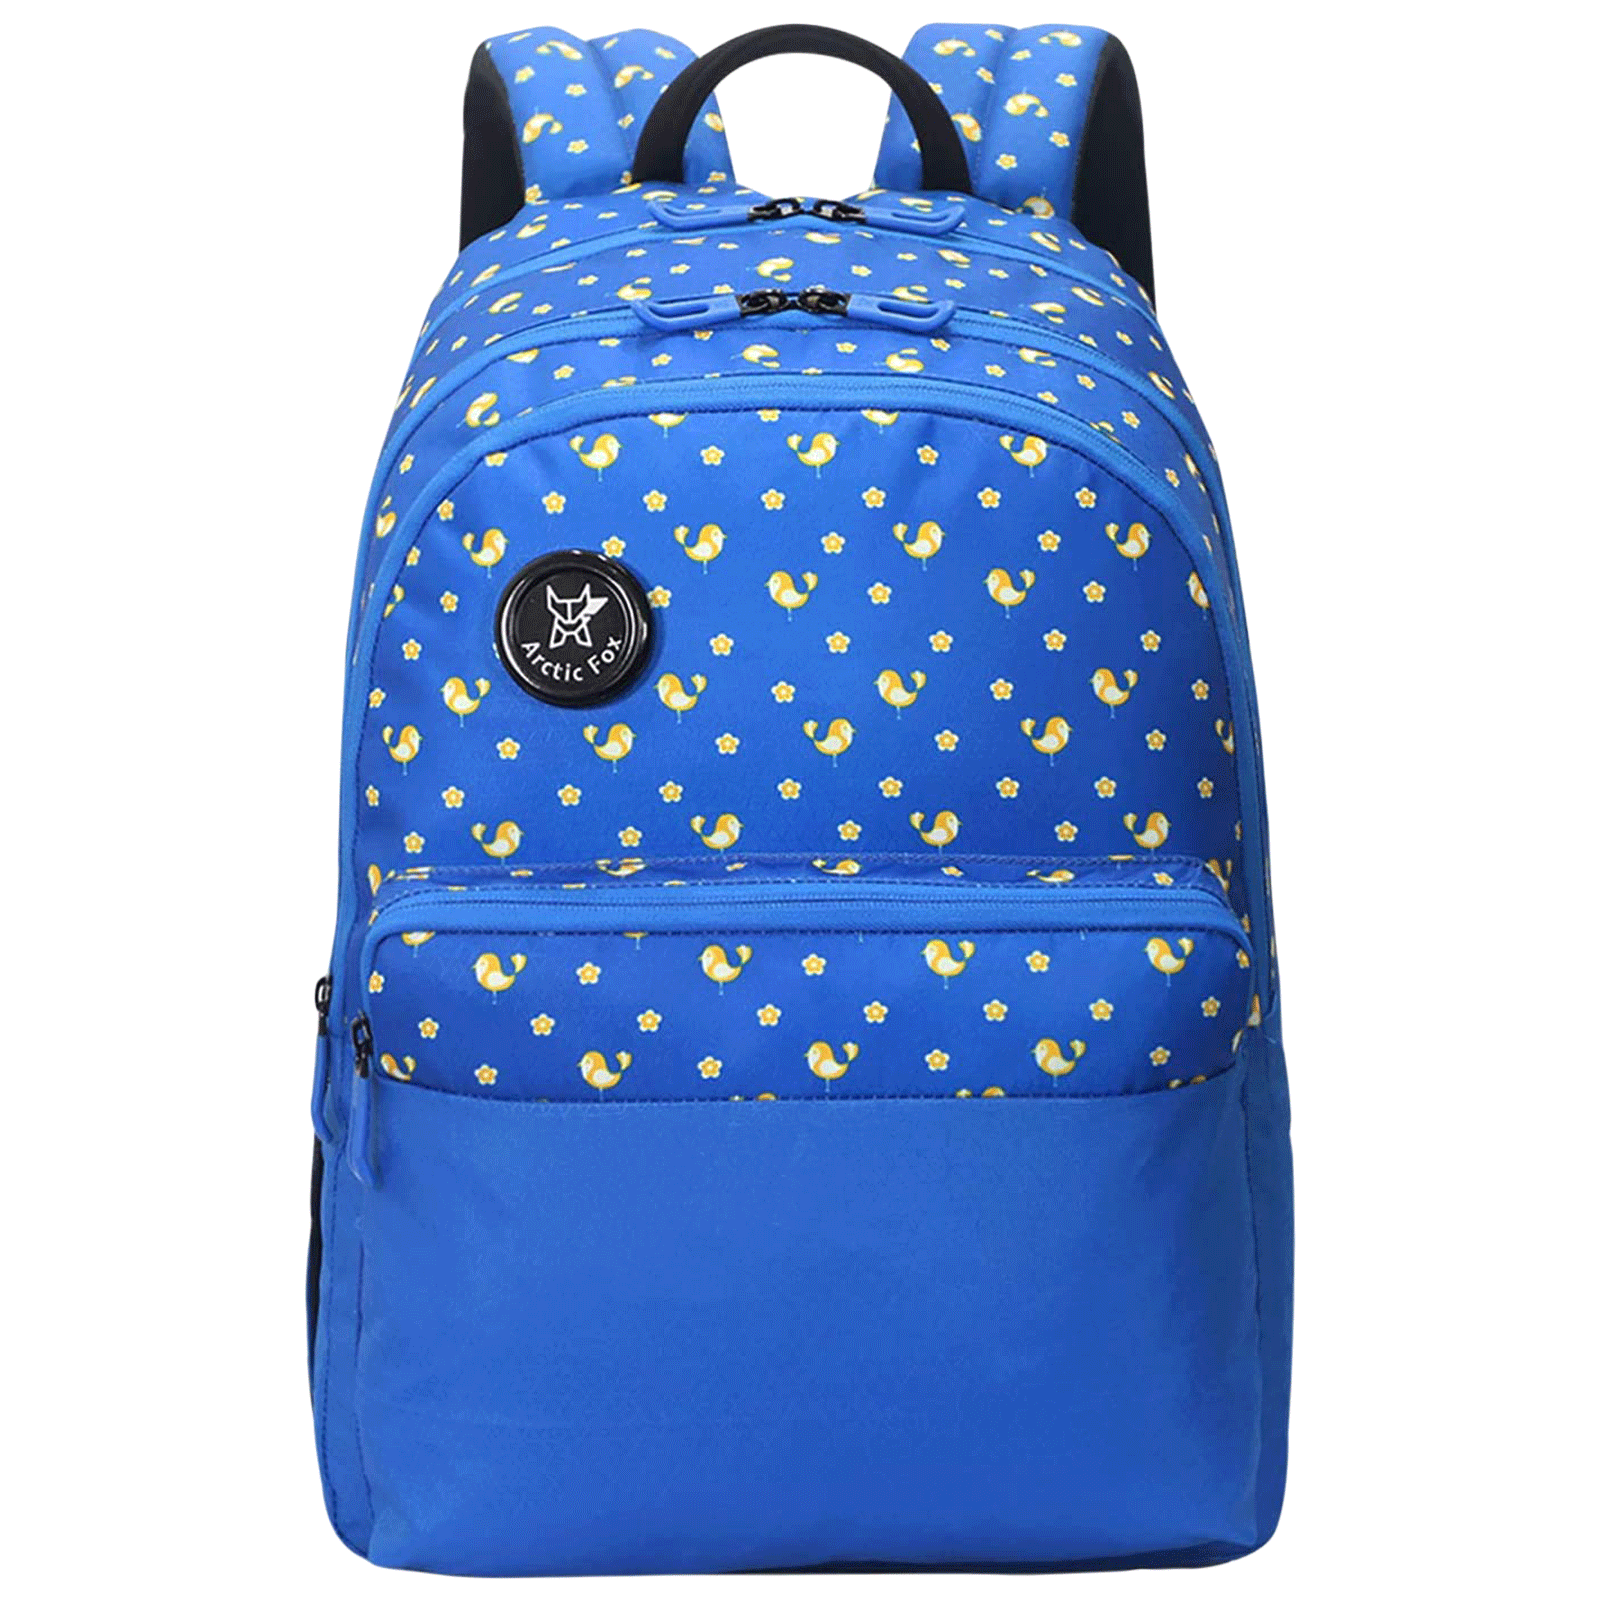 Arctic Fox Spring 23 Litres PU Coated Polyester Backpack (3 Spacious Compartments, FJUBPKDTBWZ067023, Directorie Blue)_1